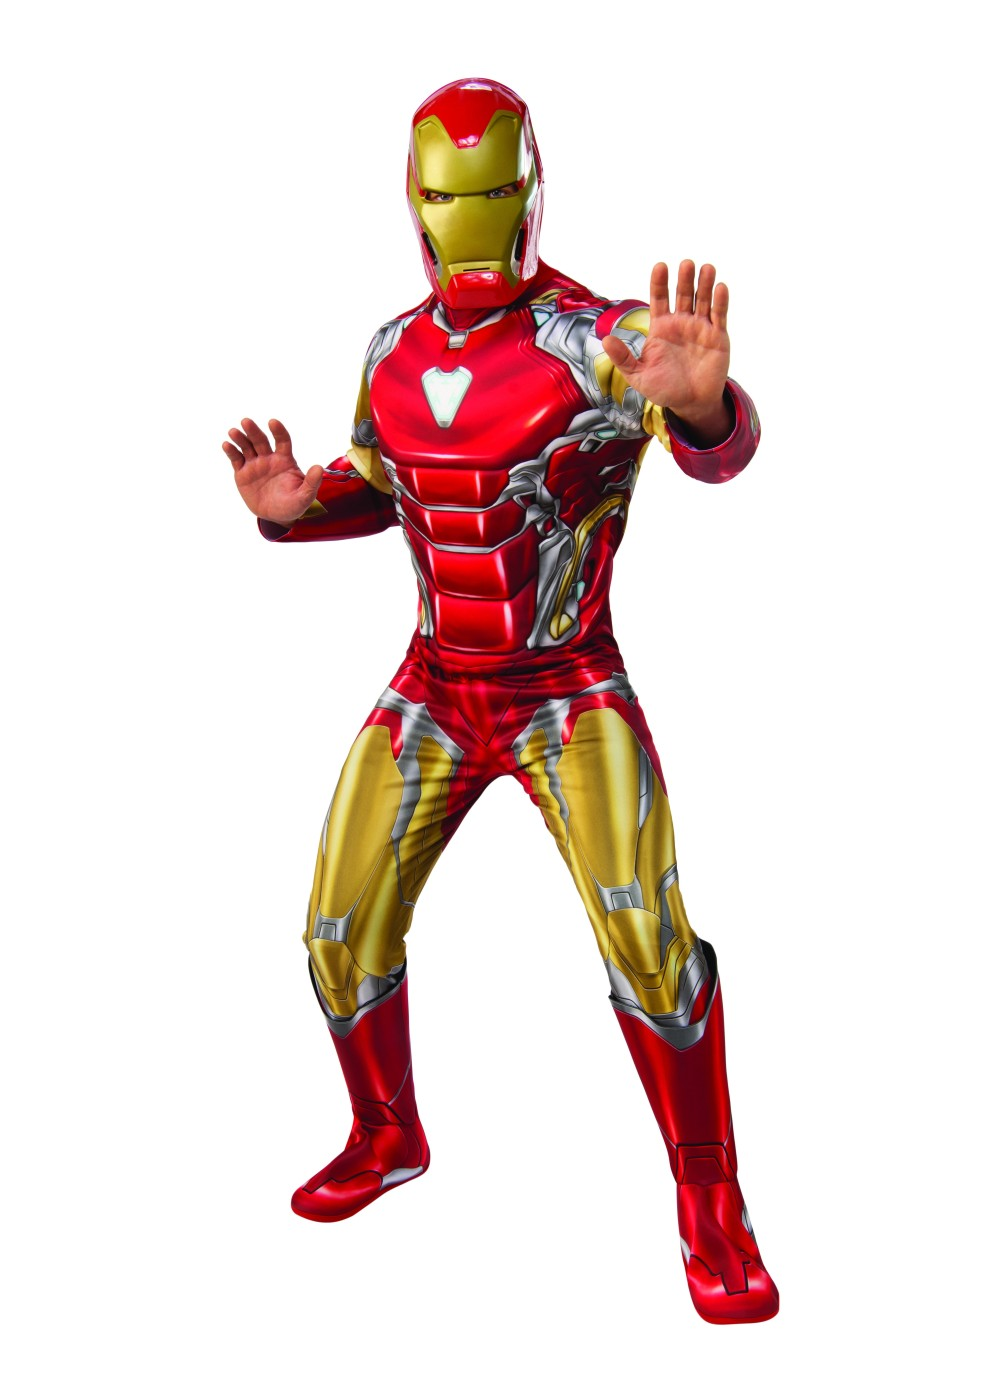 Endgame Iron Man Costume